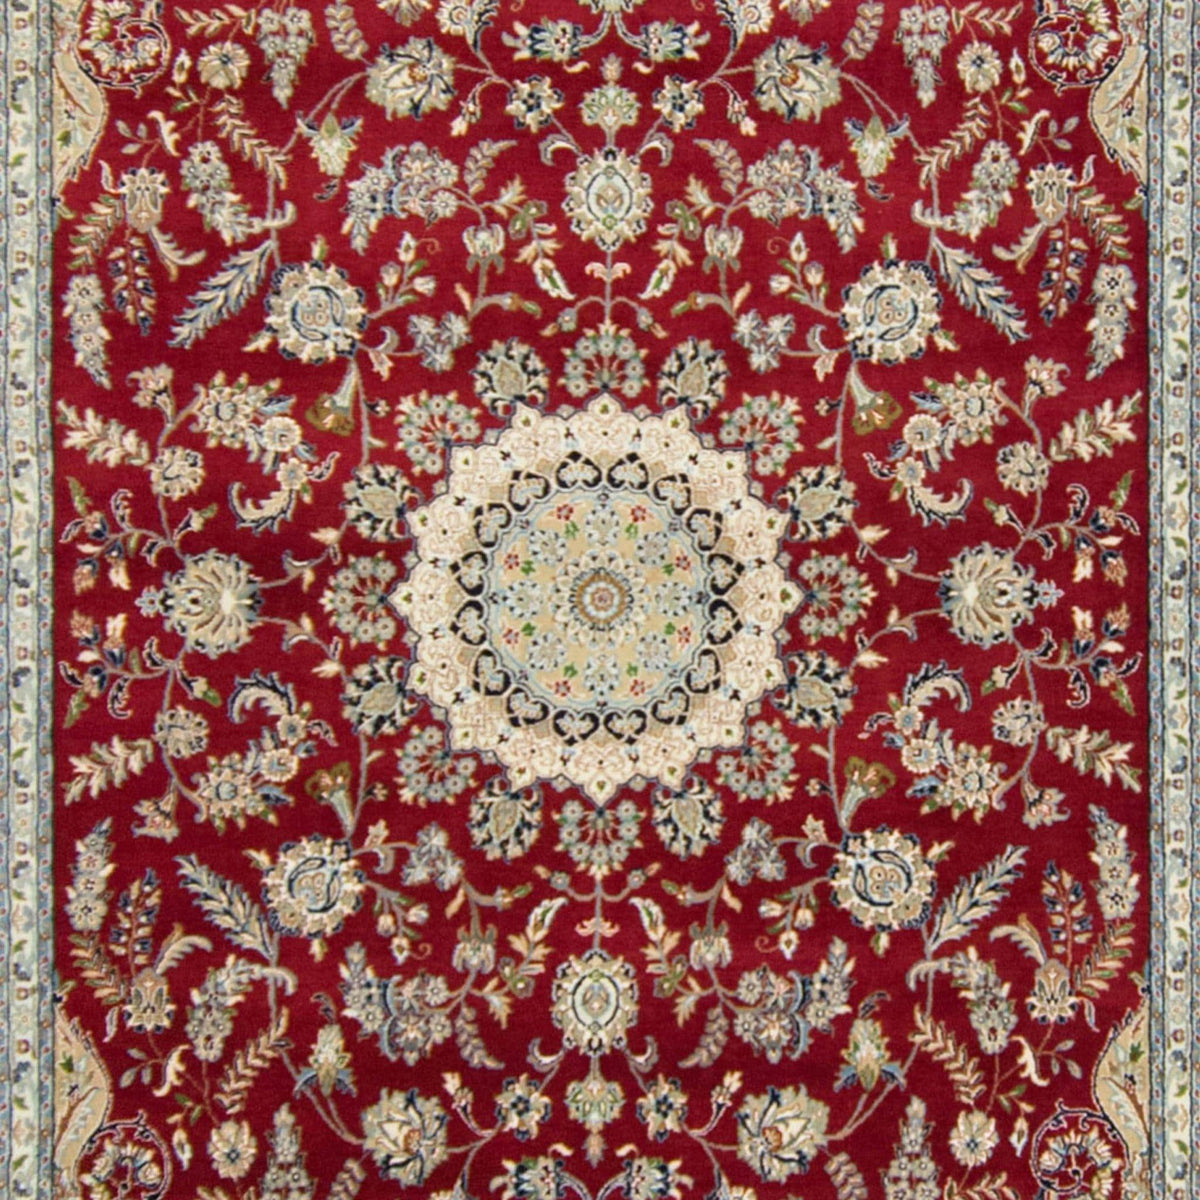 Fine Hand-knotted Wool & Silk Nain Rug 241cm x 353cm Persian-Rug | House-of-Haghi | NewMarket | Auckland | NZ | Handmade Persian Rugs | Hand Knotted Persian Rugs